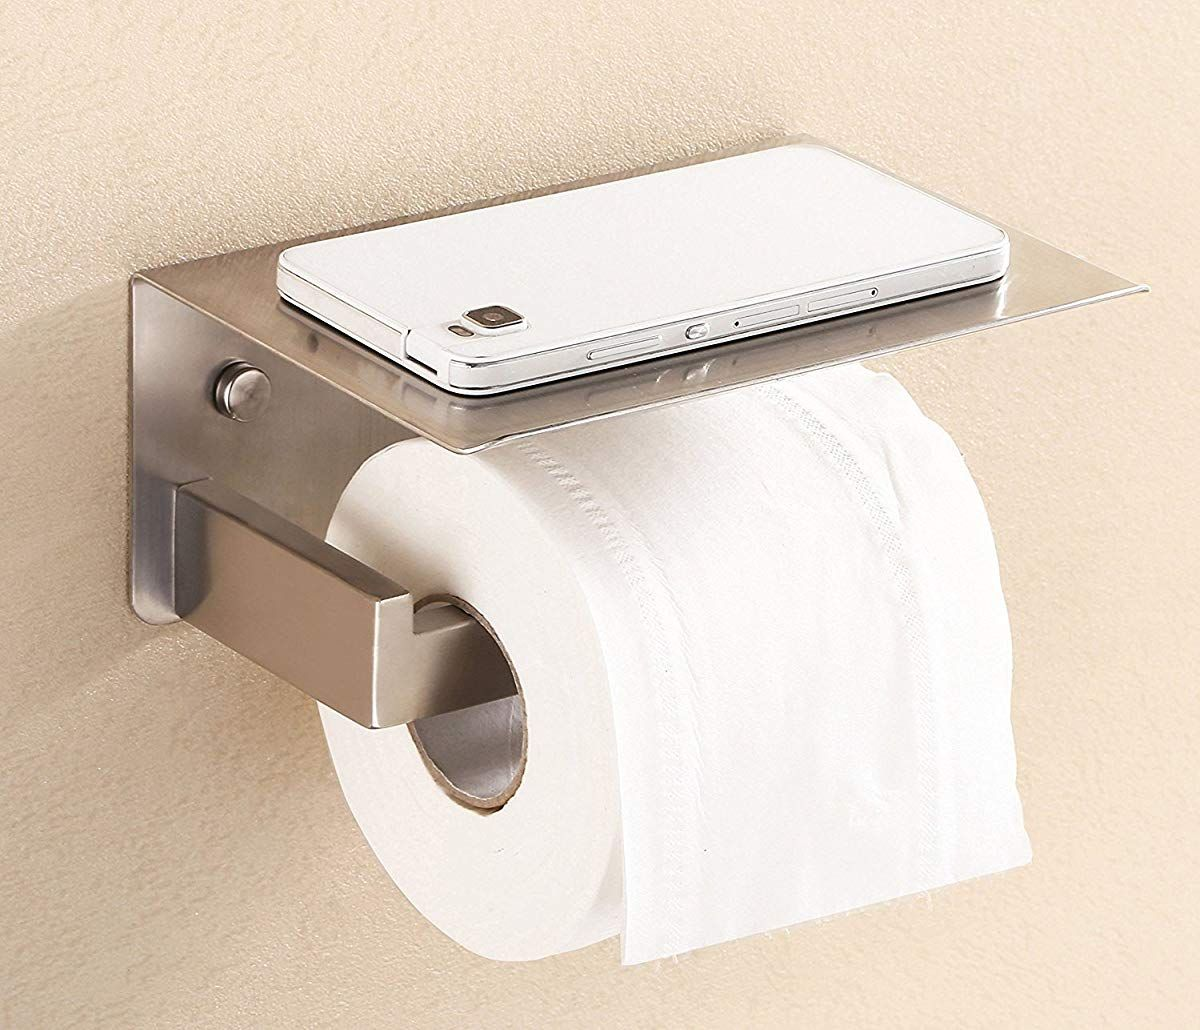 Stainless Steel Bathroom Paper Tissue Holder With Mobile Phone Toilet Paper Holder Stainless Steel Bathroom Toilet Paper